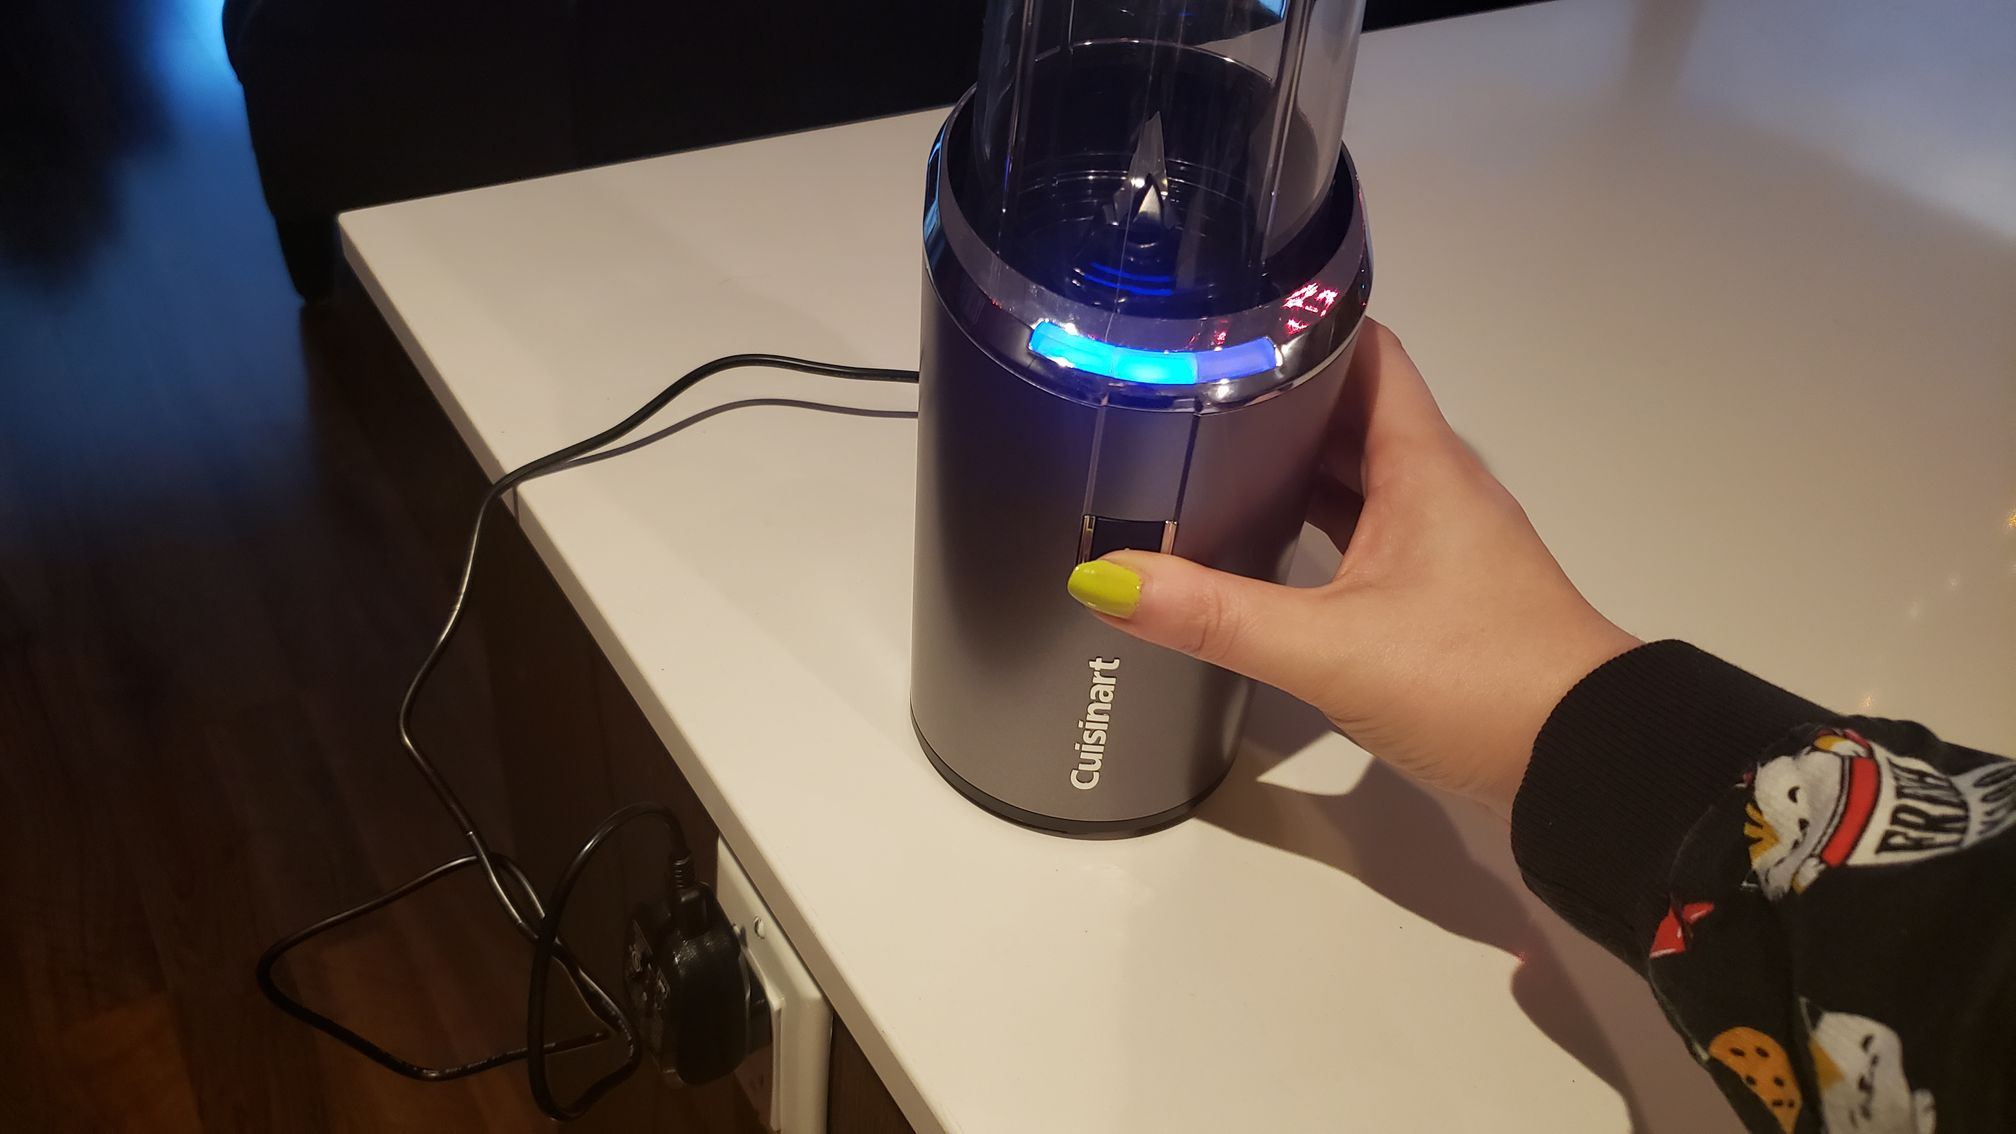 image of a hand pressing the blend button while the blender is plugged in